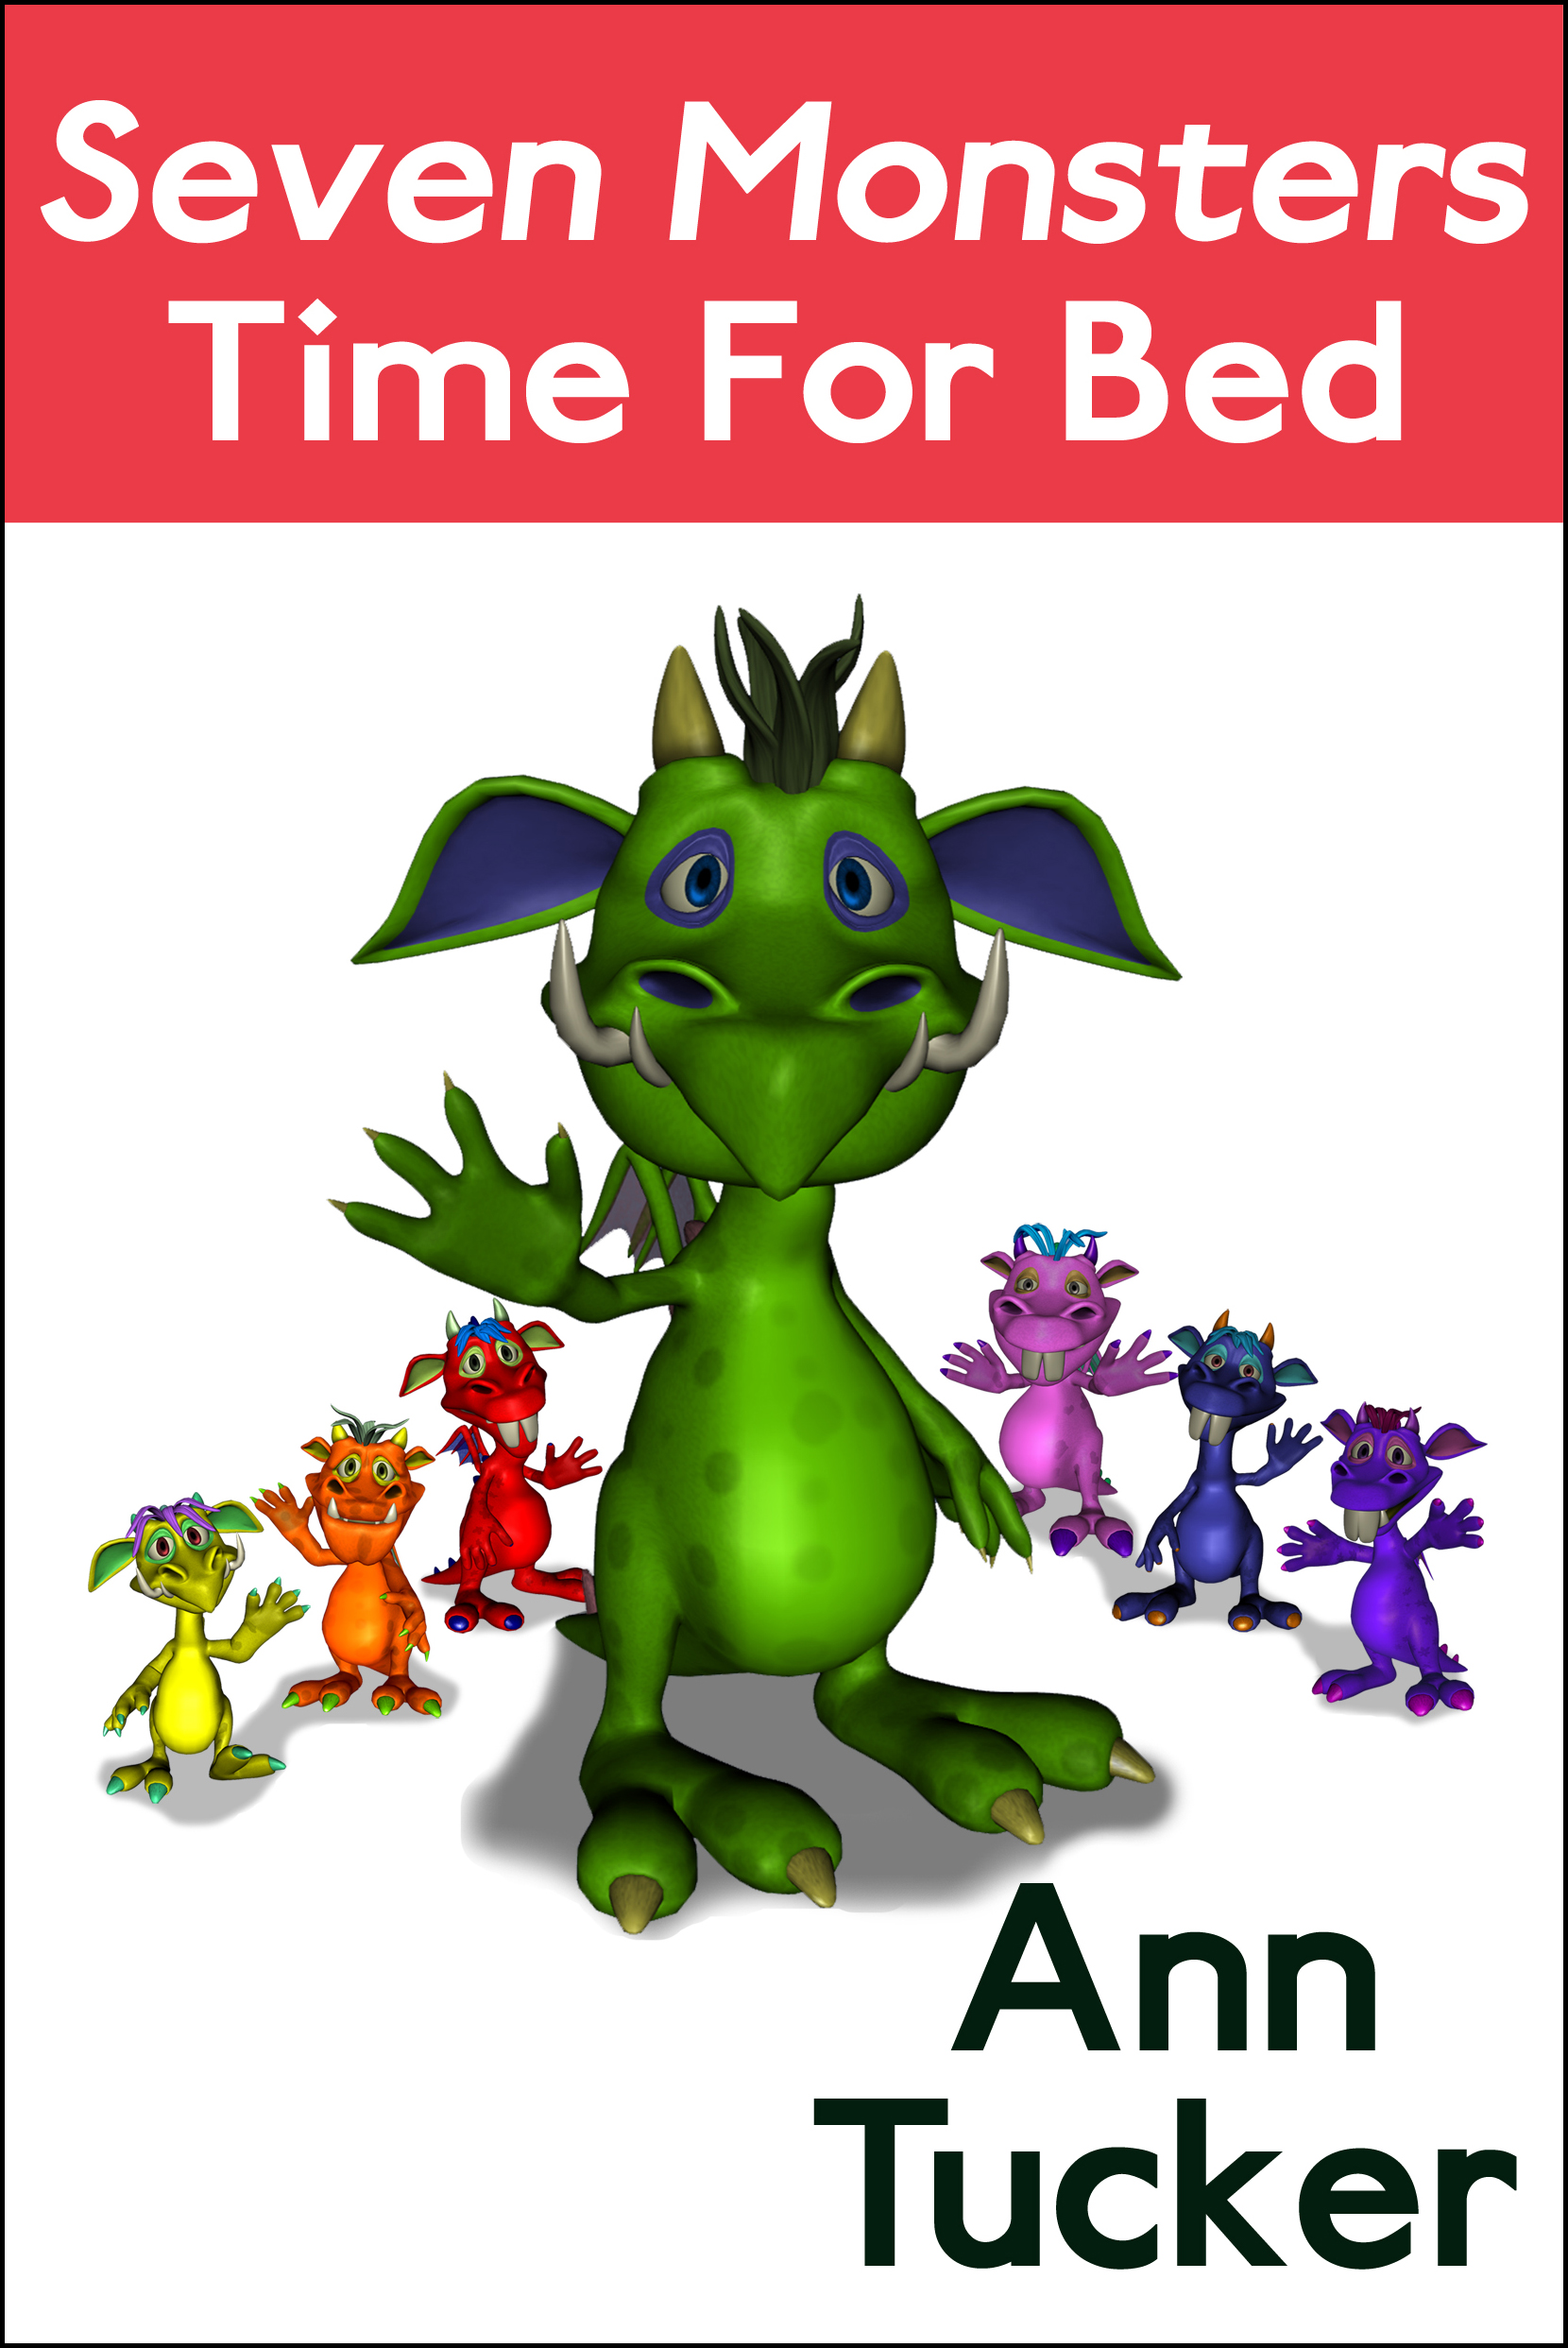 Seven Monsters Time for Bed